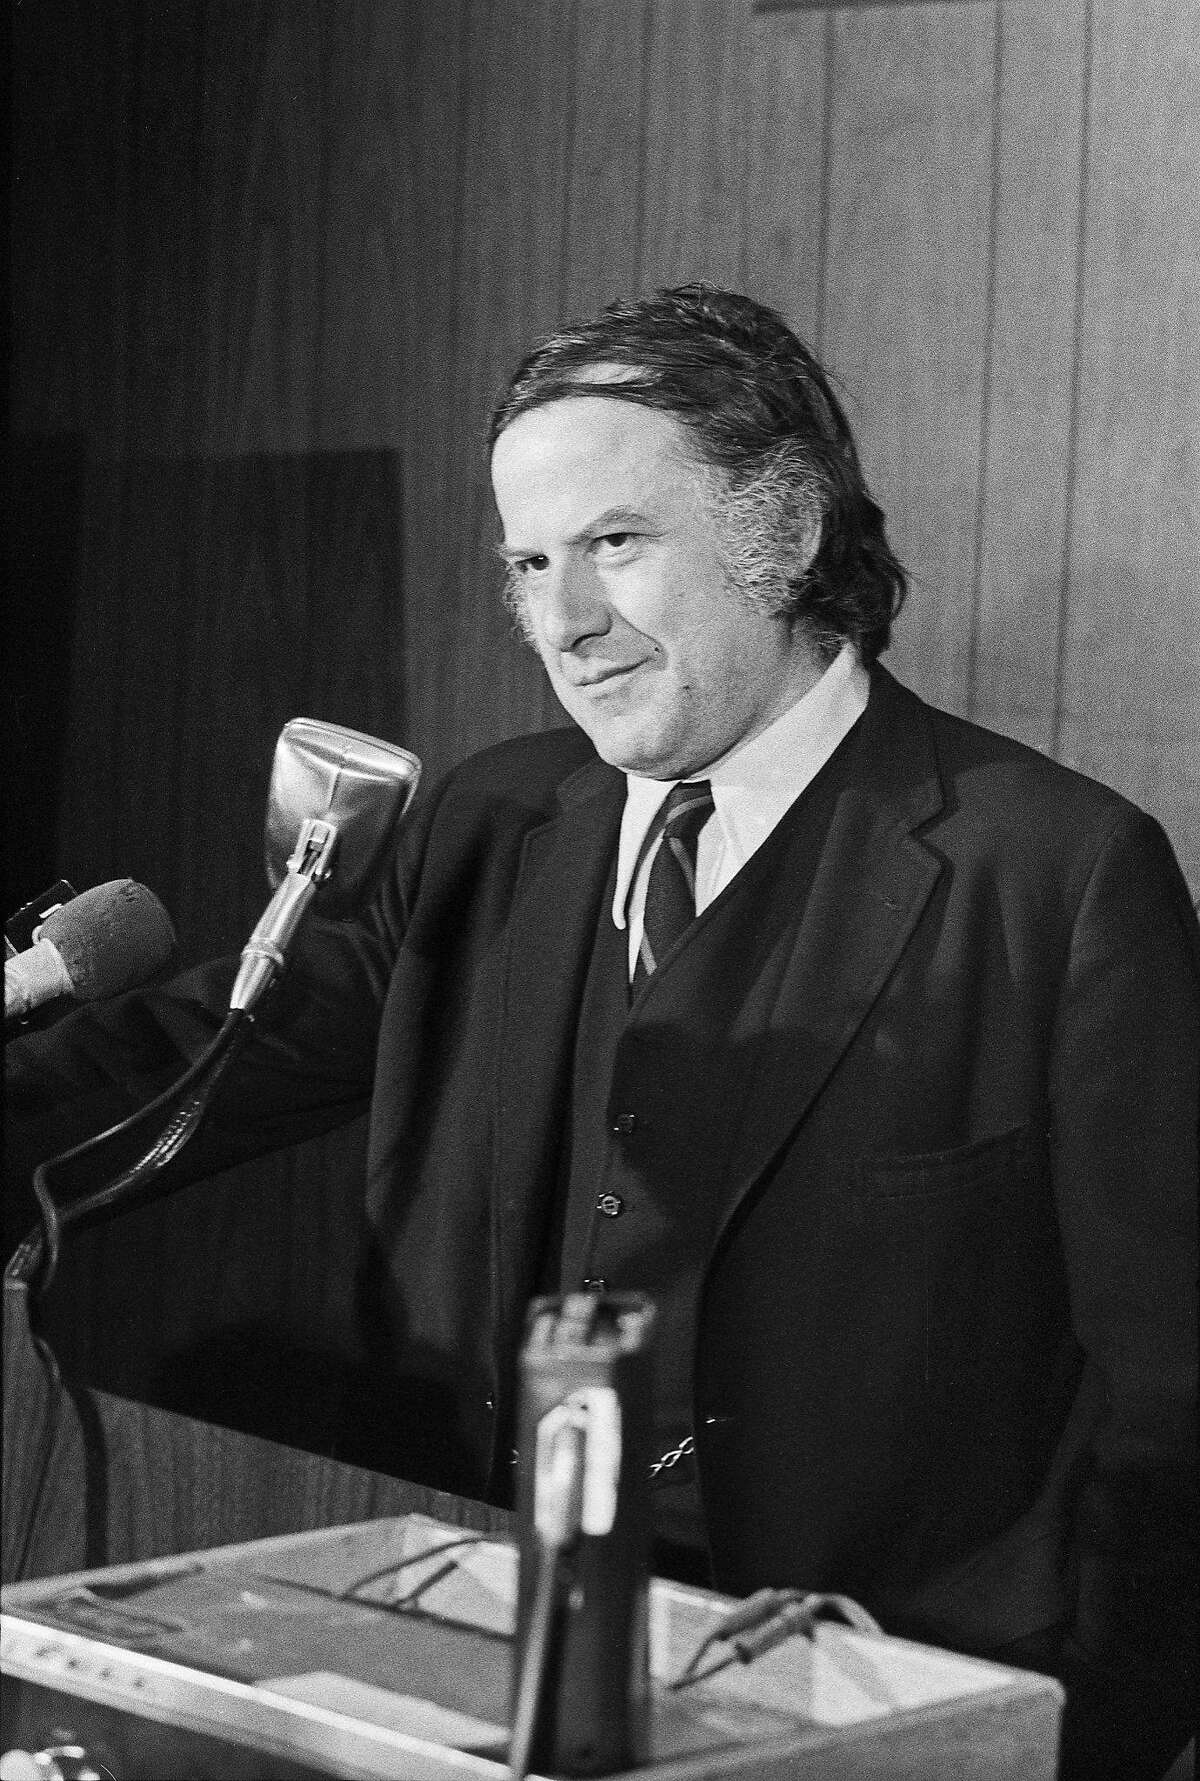 FILE -- Alan Abel, a professional hoaxer, at a news conference where he posed as a former White House employee who supposedly possessed the infamous 18 1/2 minutes missing from the Watergate tapes, at the Roosevelt Hotel in Manhattan, Nov. 8, 1973. The professional trickster who gleefully hoodwinked the American public � including making himself the subject of an earnest news obituary in The New York Times in 1980 � apparently actually did die, at his home in Southbury, Conn. He was 94. (Robert Walker/The New York Times)